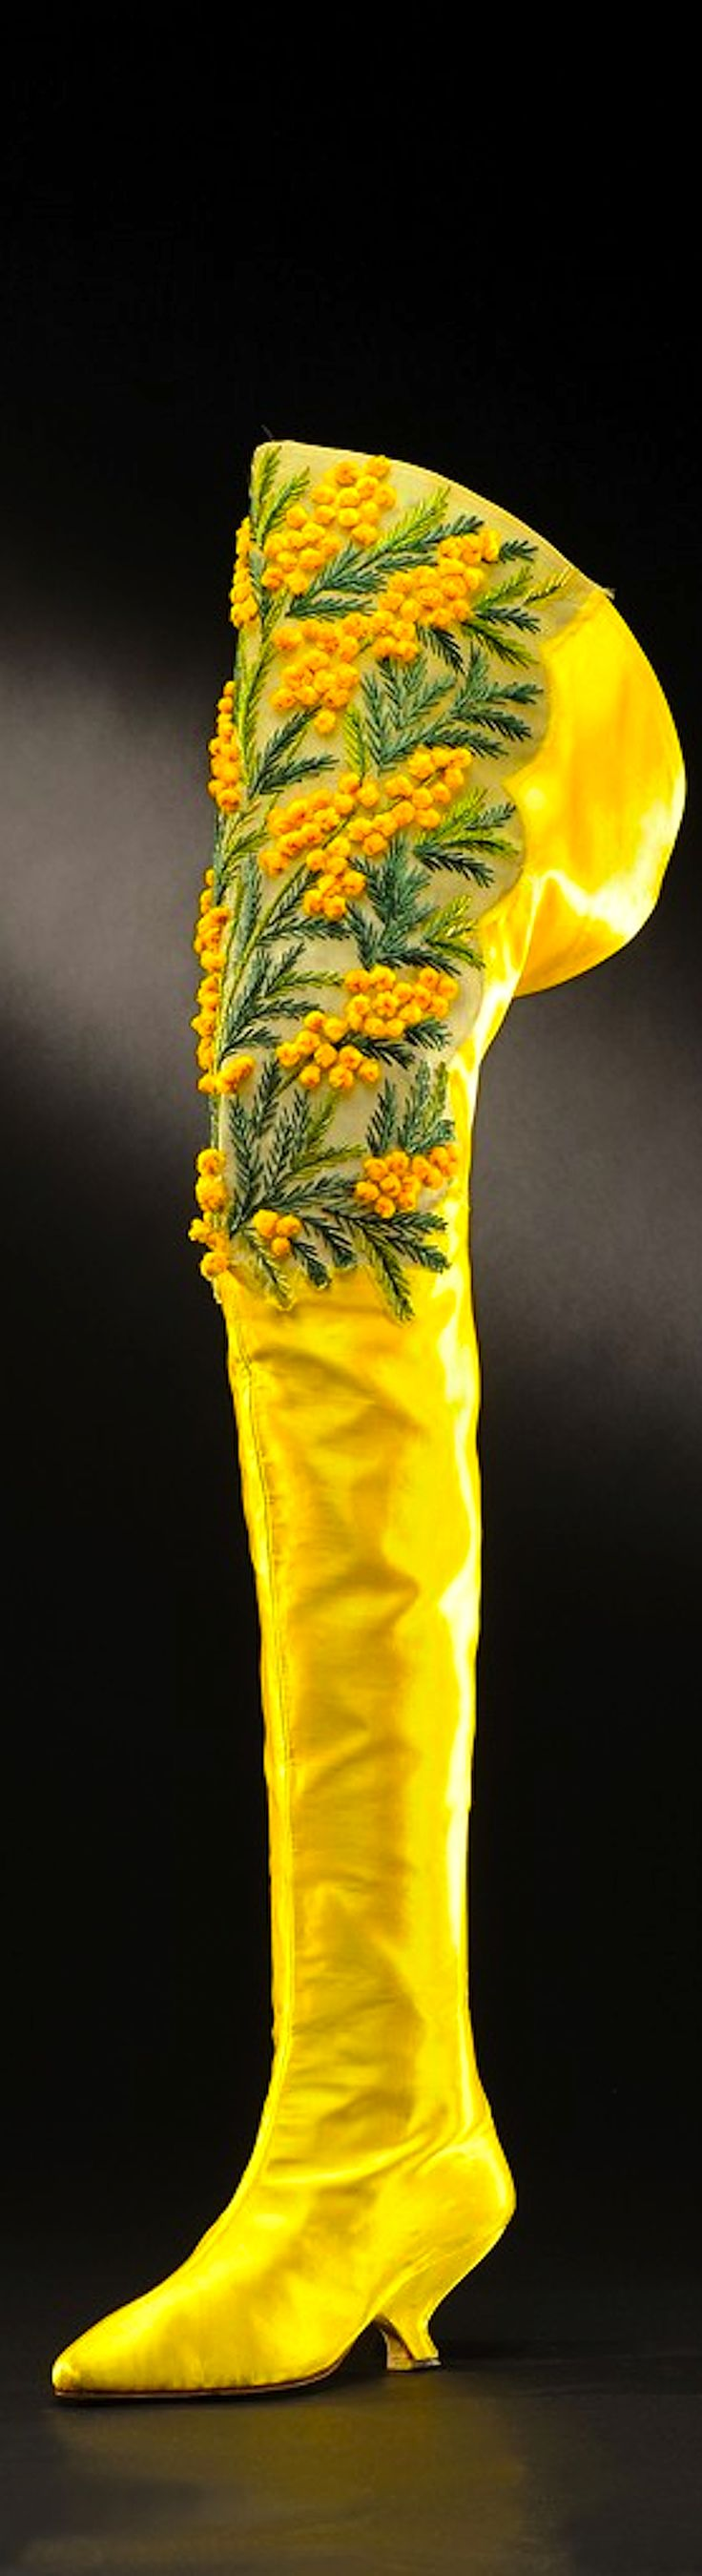 1000  ideas about Yellow Boots on Pinterest | Yellow wellies